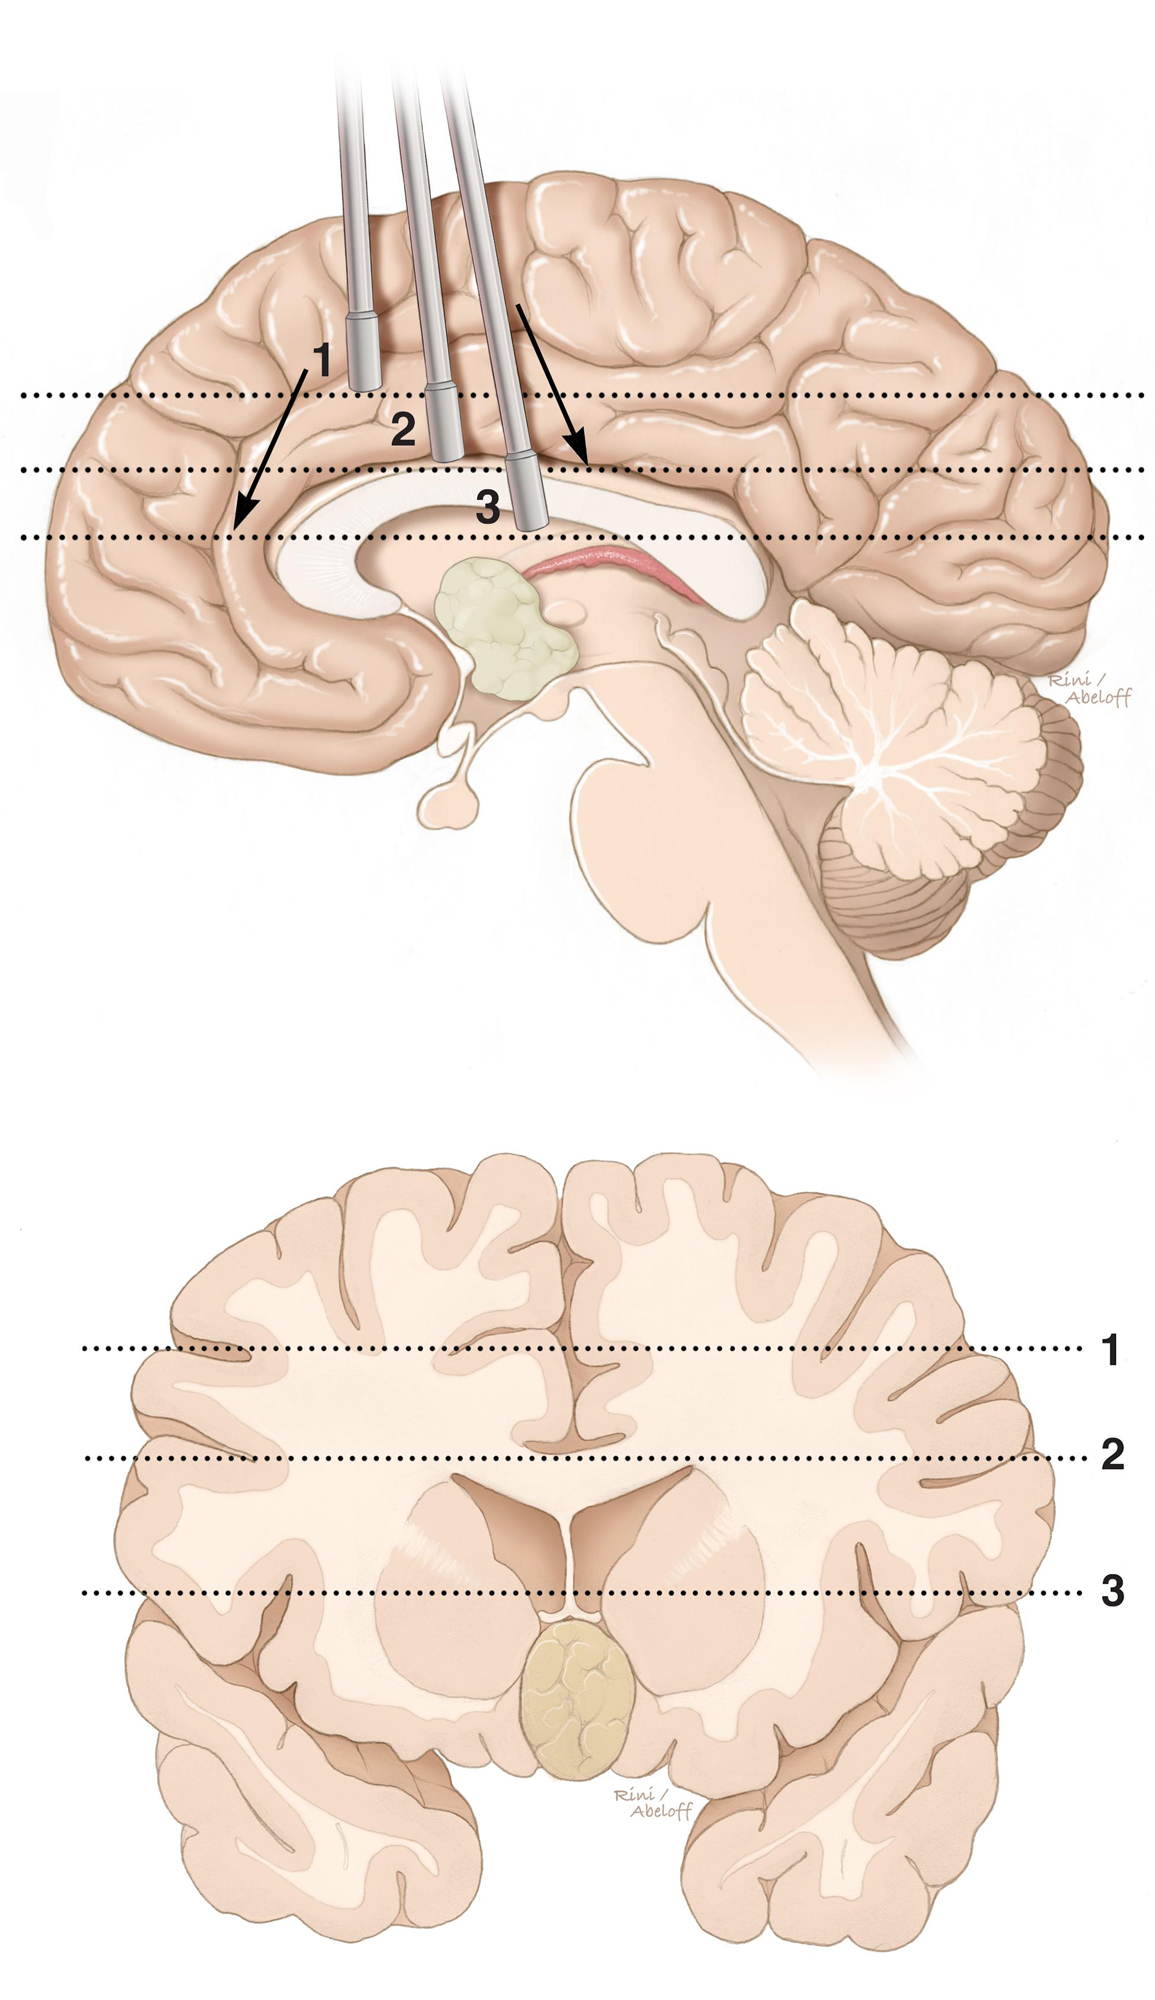 Figure 15: The roadmap through the interhemispheric trajectory toward the midline chambers is demonstrated. Note the sagittal perspective in the above image. It is easy for the surgeon to become disoriented and travel too anteriorly or posteriorly (arrows) along the interhemispheric space. Navigation can keep the surgeon on track. The hashed lines correspond to the landmark levels of dissection in the coronal illustration (bottom image). These levels include the cingulum (1), corpus callosum (2) and fornices (3). If the surgeon is not directing the center of dissection toward the surgical target, additional disruption of normal tissues is later necessary for re-directing the center of dissection.